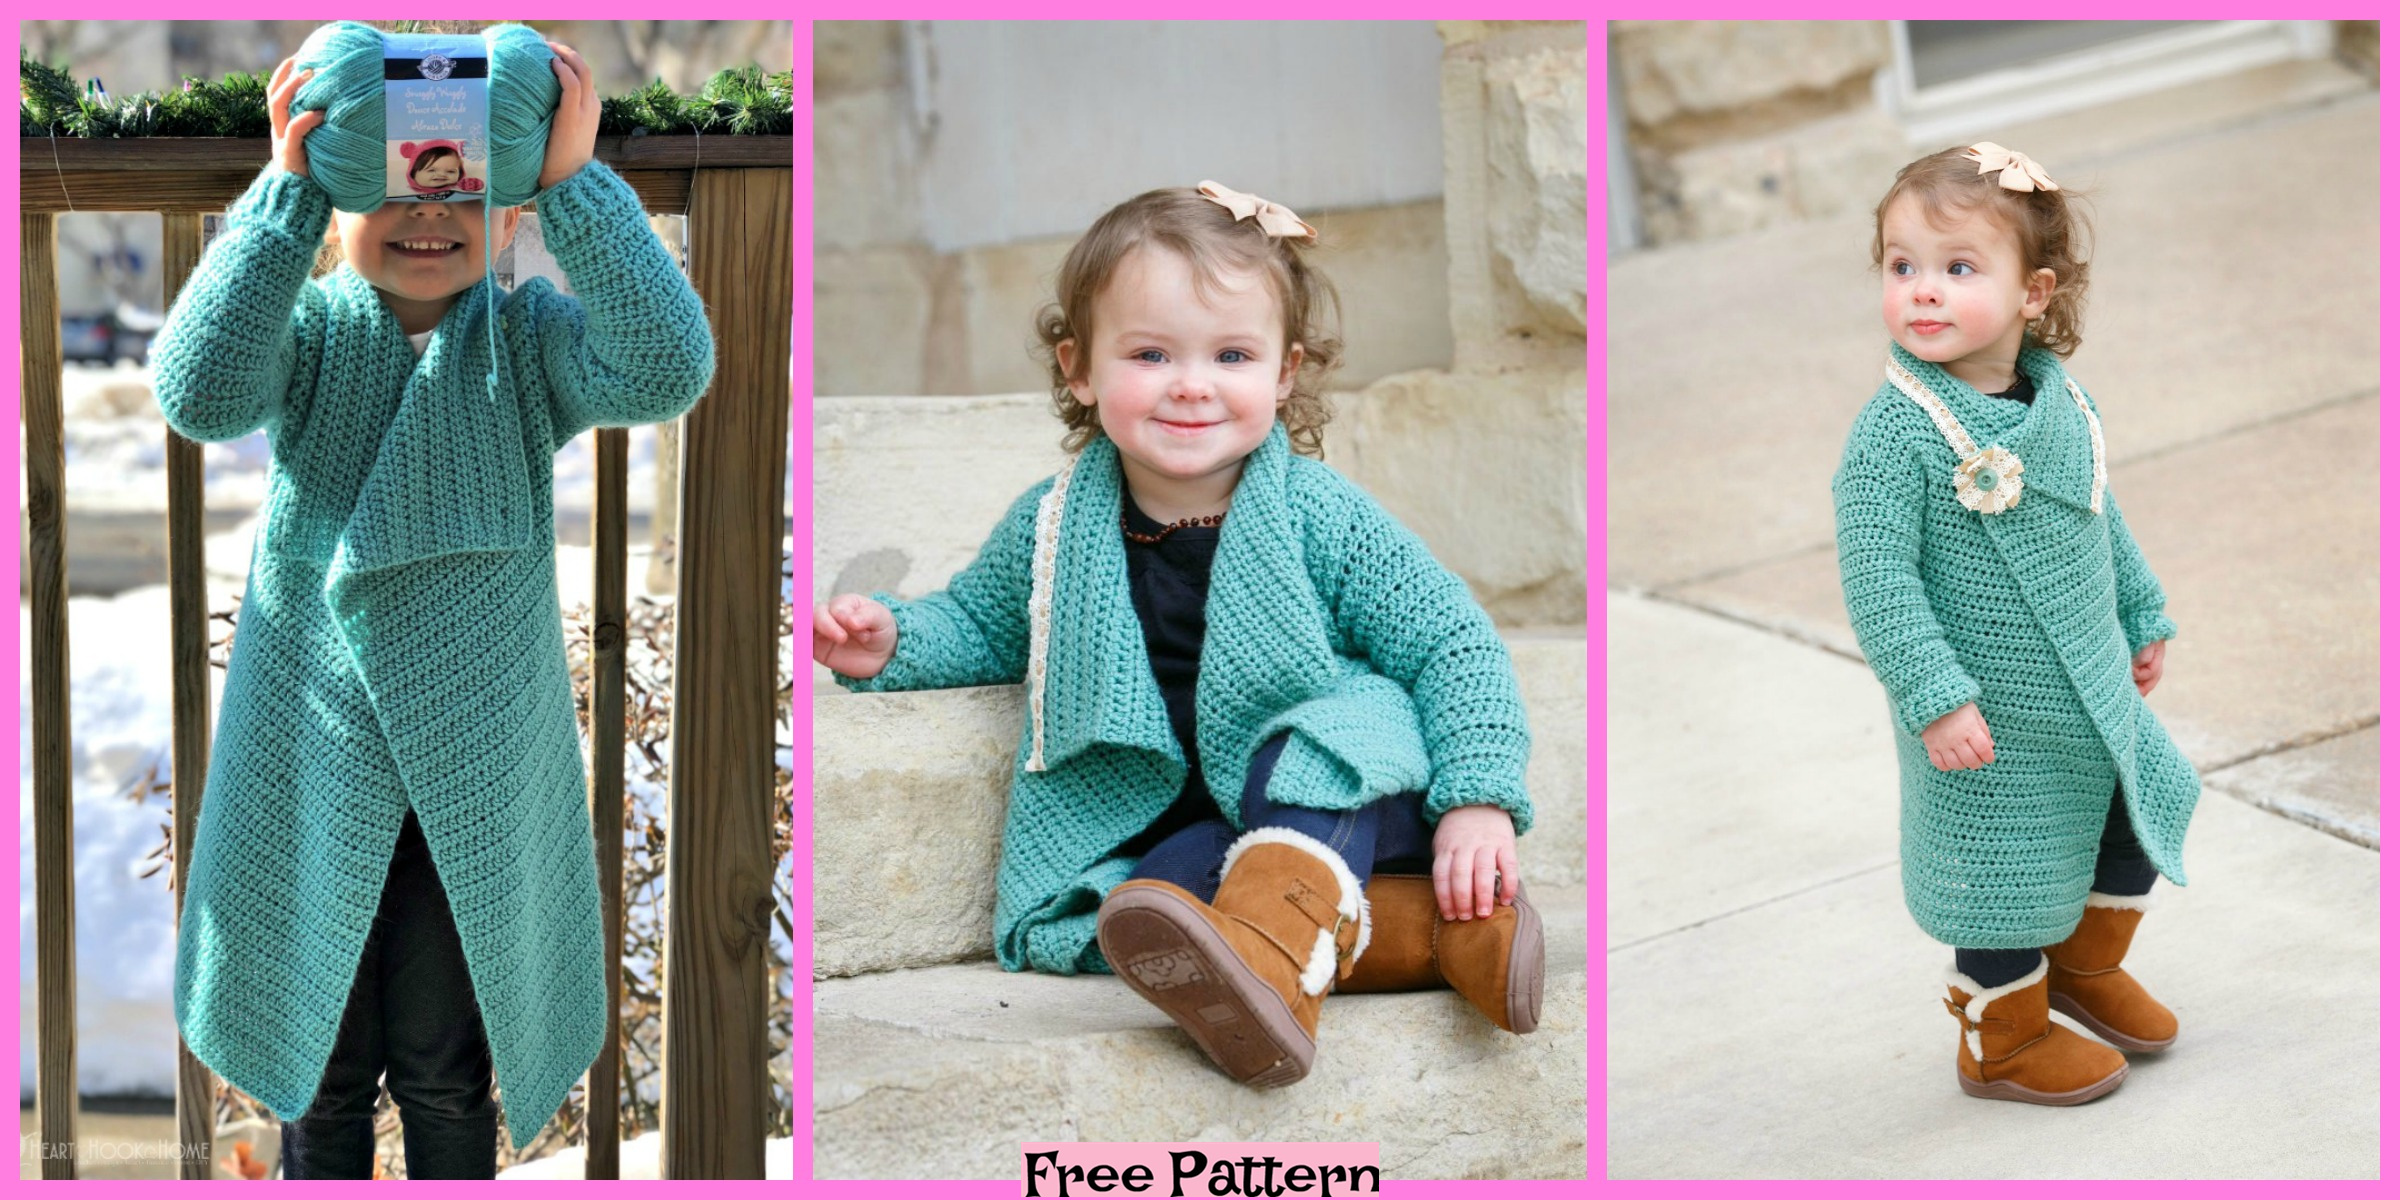 Crochet Blanket Cardigans – Free Patterns